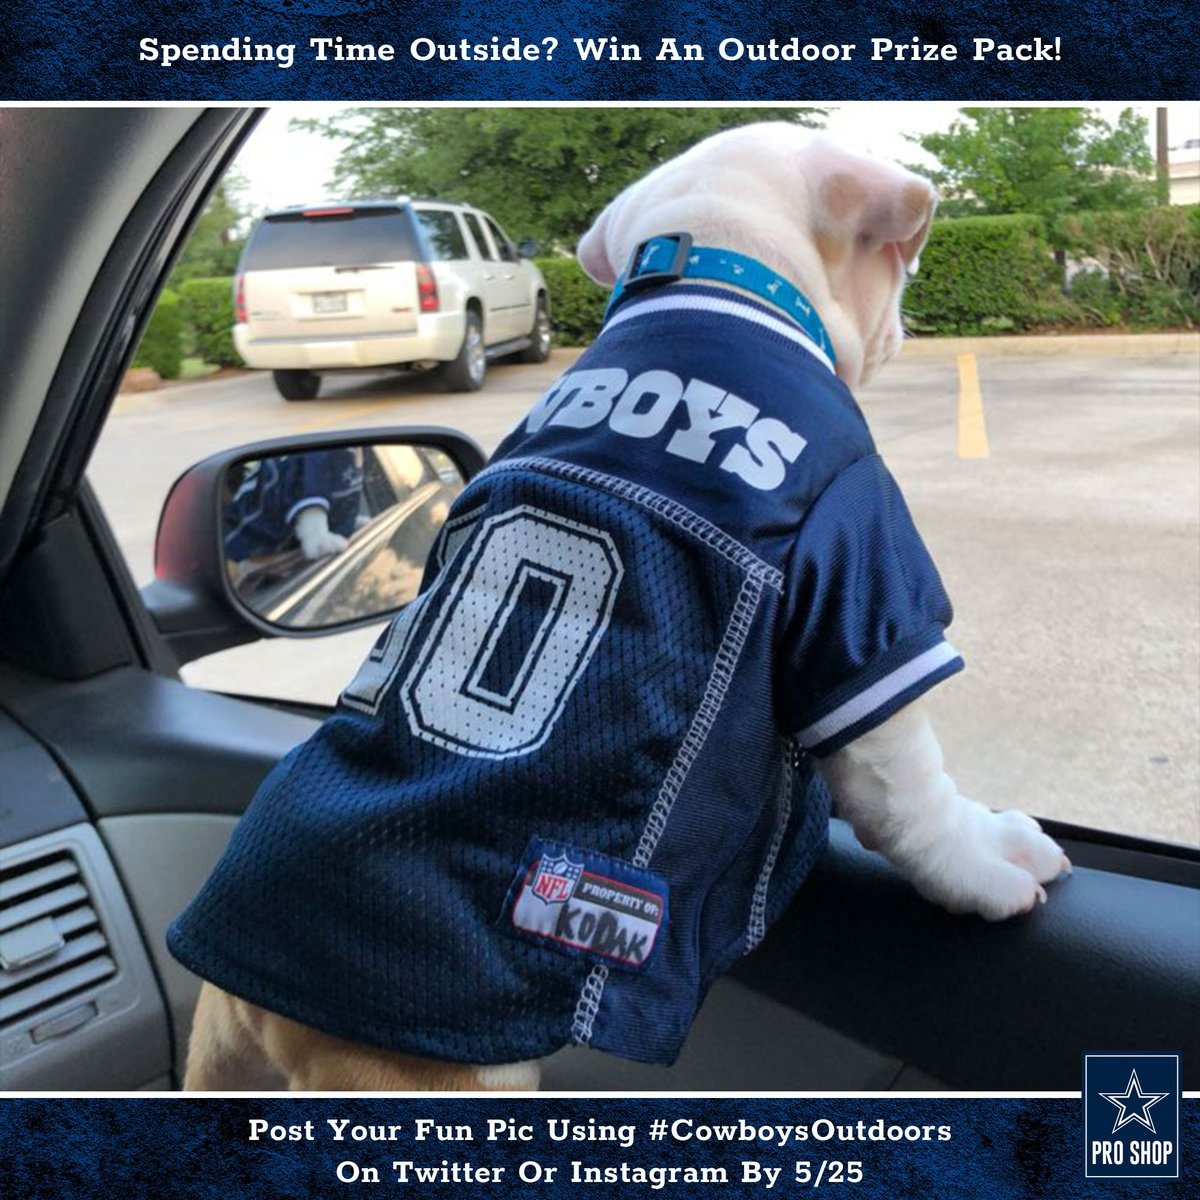 Don't miss your chance at a new #DallasCowboys prize pack!  1. Follow us 2. Post a pic of your time spent outside in your #CowboysNation gear using #CowboysOutdoors 3. You could win a Pro Shop package of awesome outdoor gear!  Enter by Monday 5/25. Rules: https://t.co/7JX0xUFgq5 https://t.co/RfeJygXckm